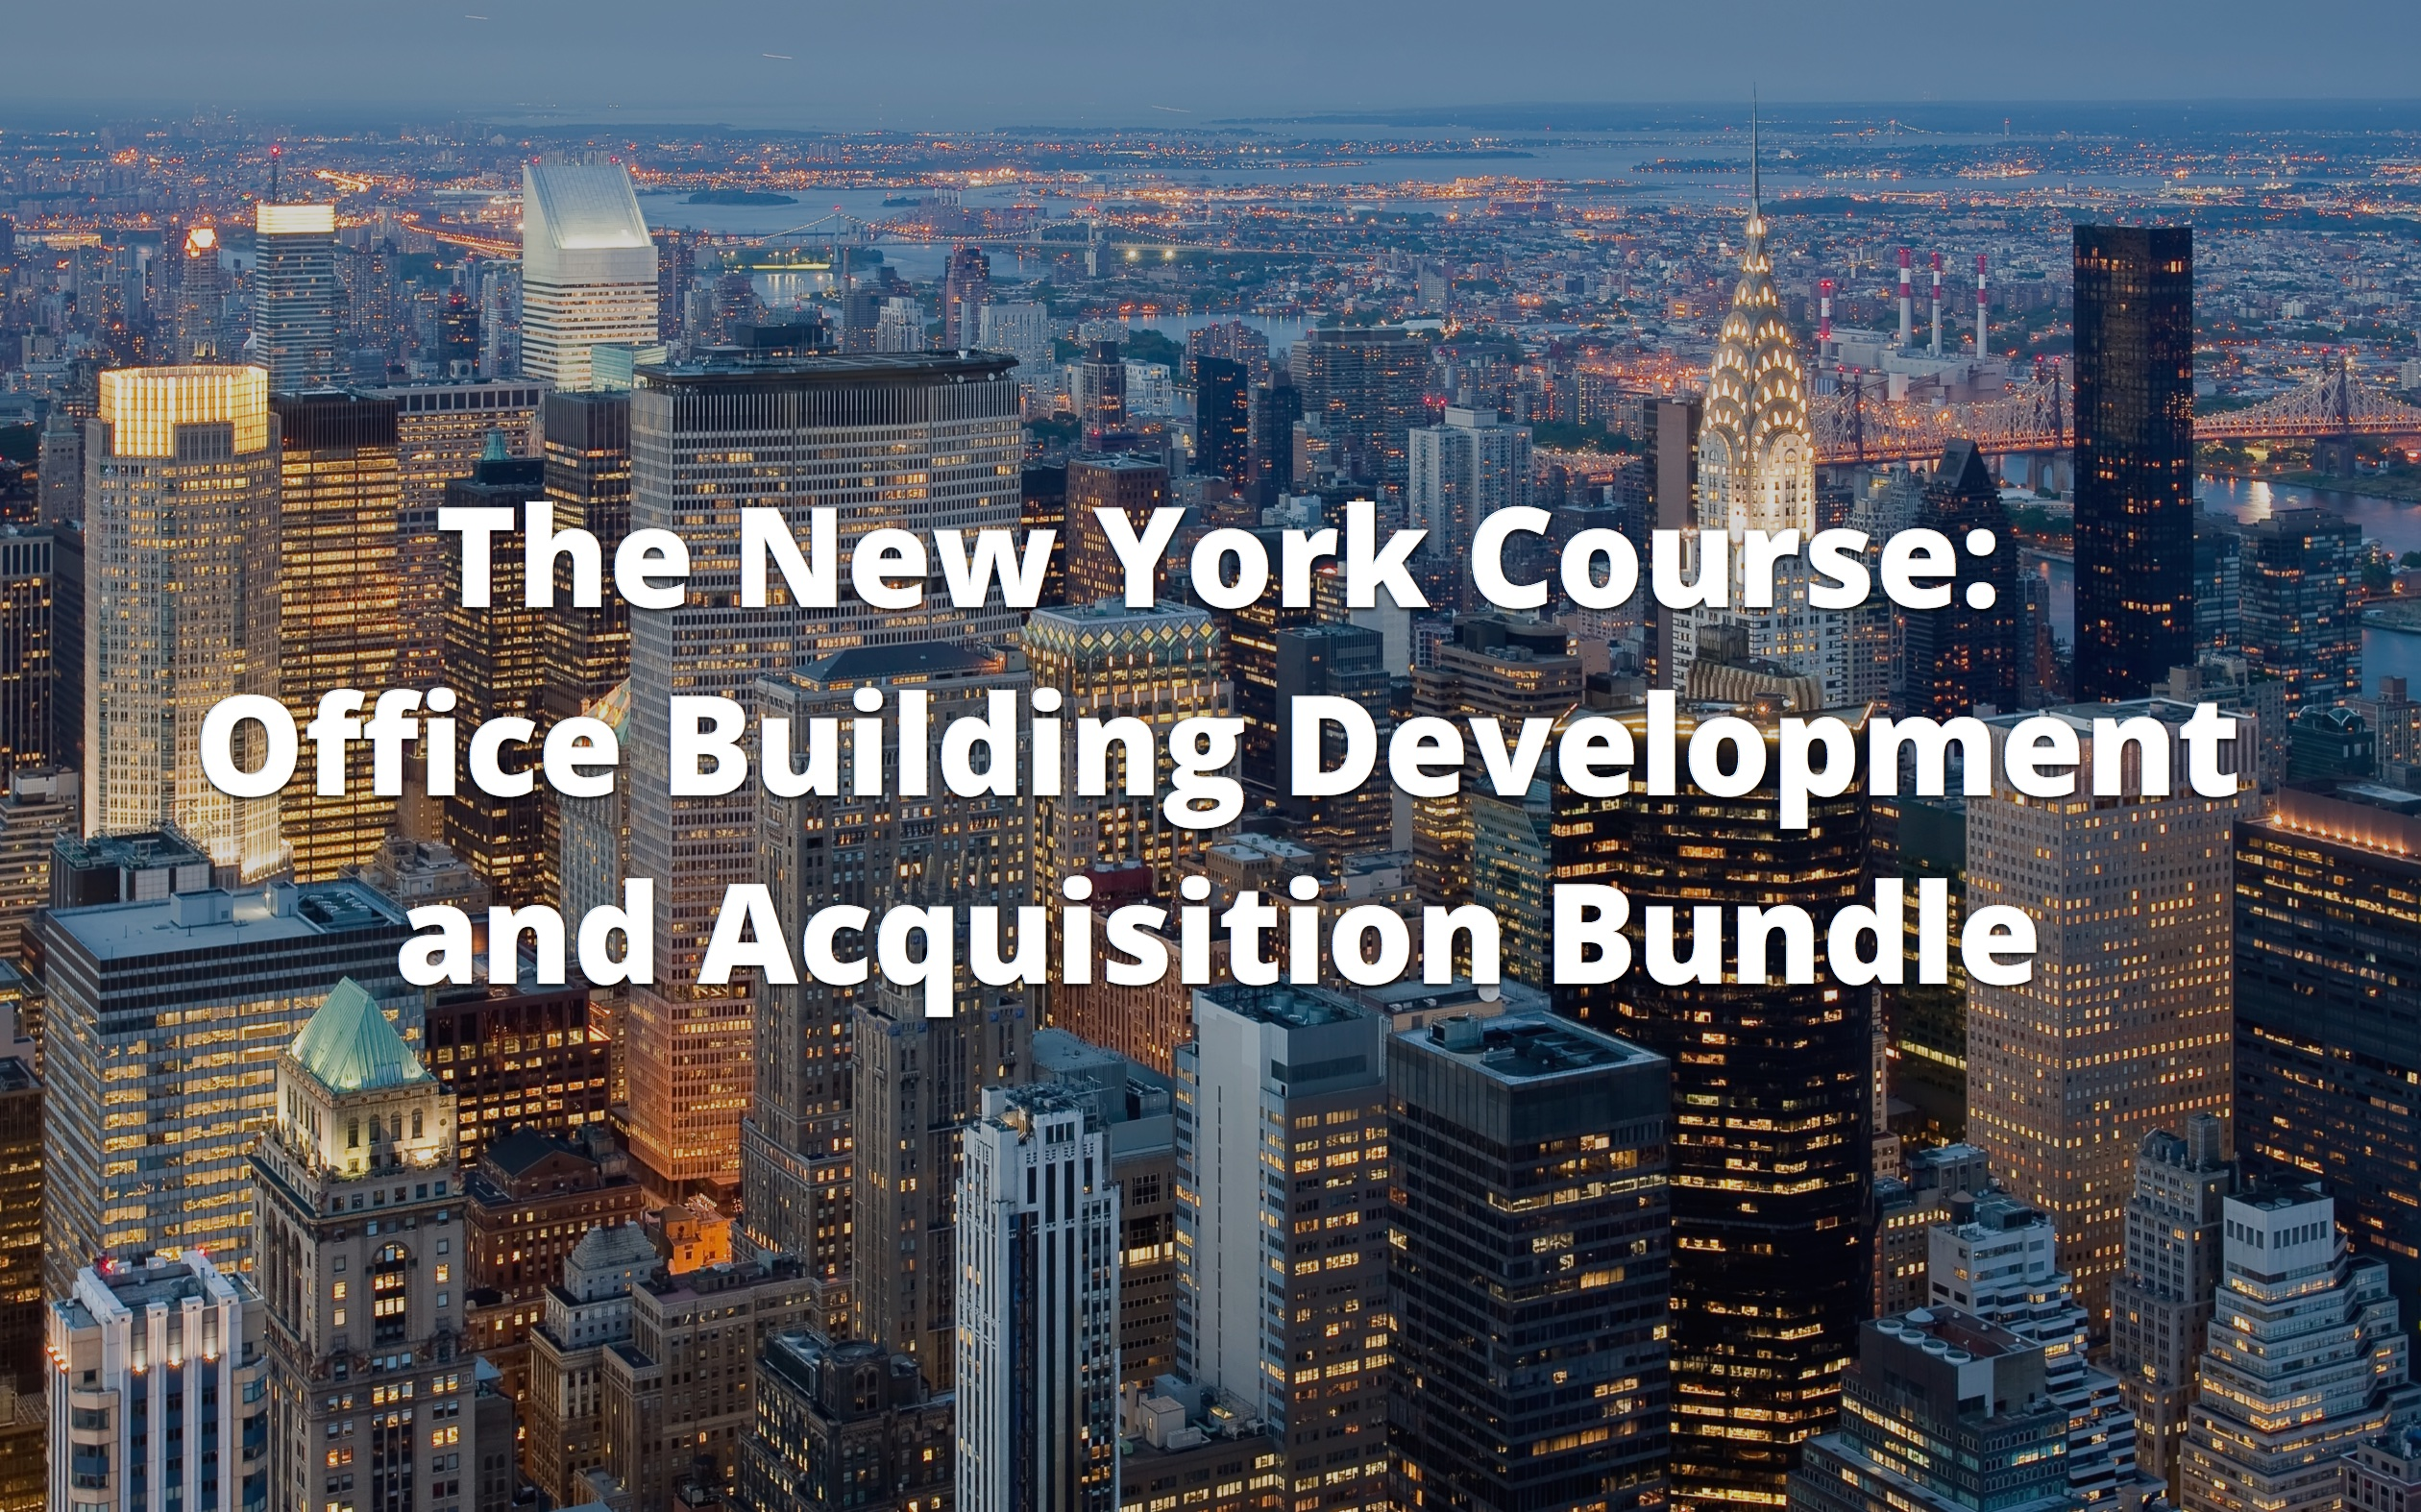 The New York Course Ofiice Building Development and Acquisition Bundle